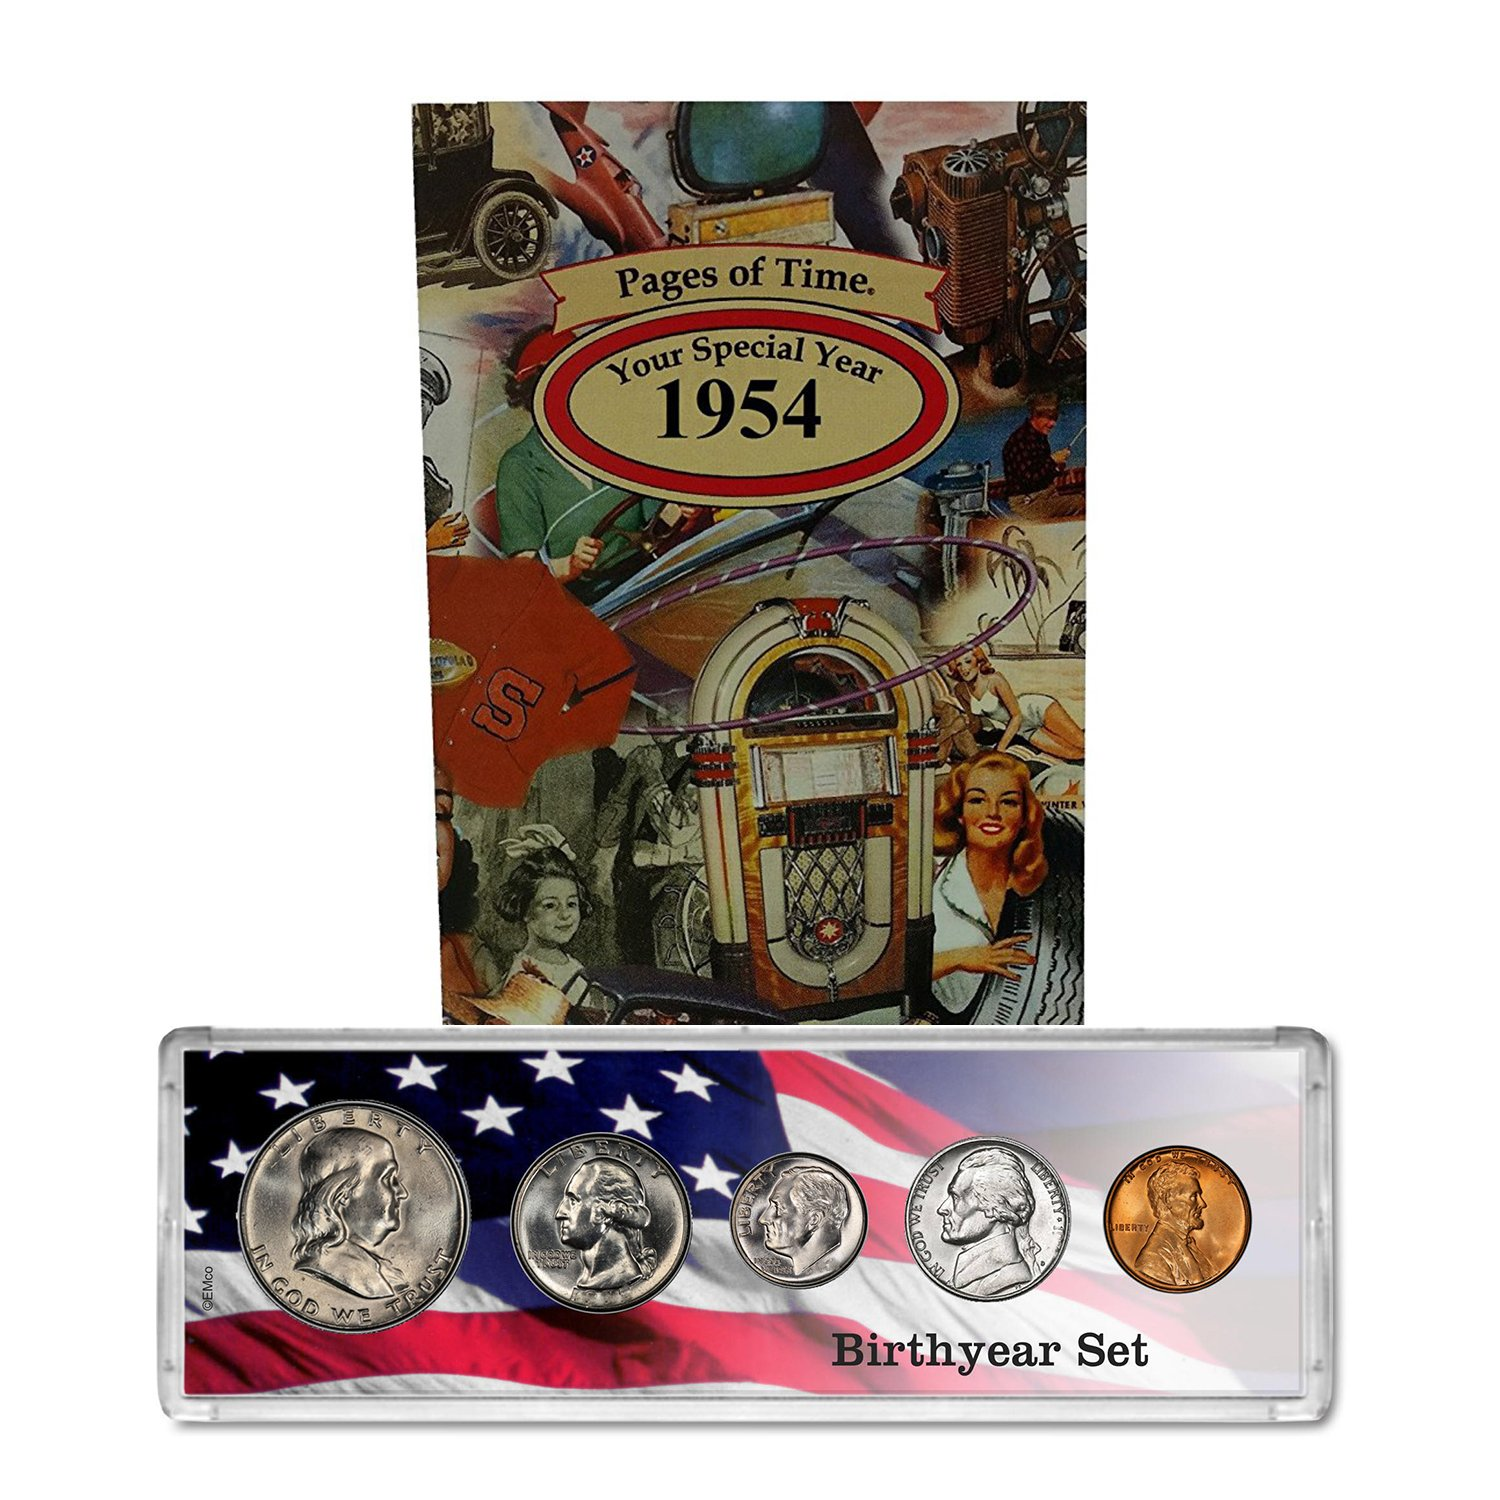 1954 Year Coin Set and Greeting Card : 65th Birthday - Birthyear Set by Coins4Me